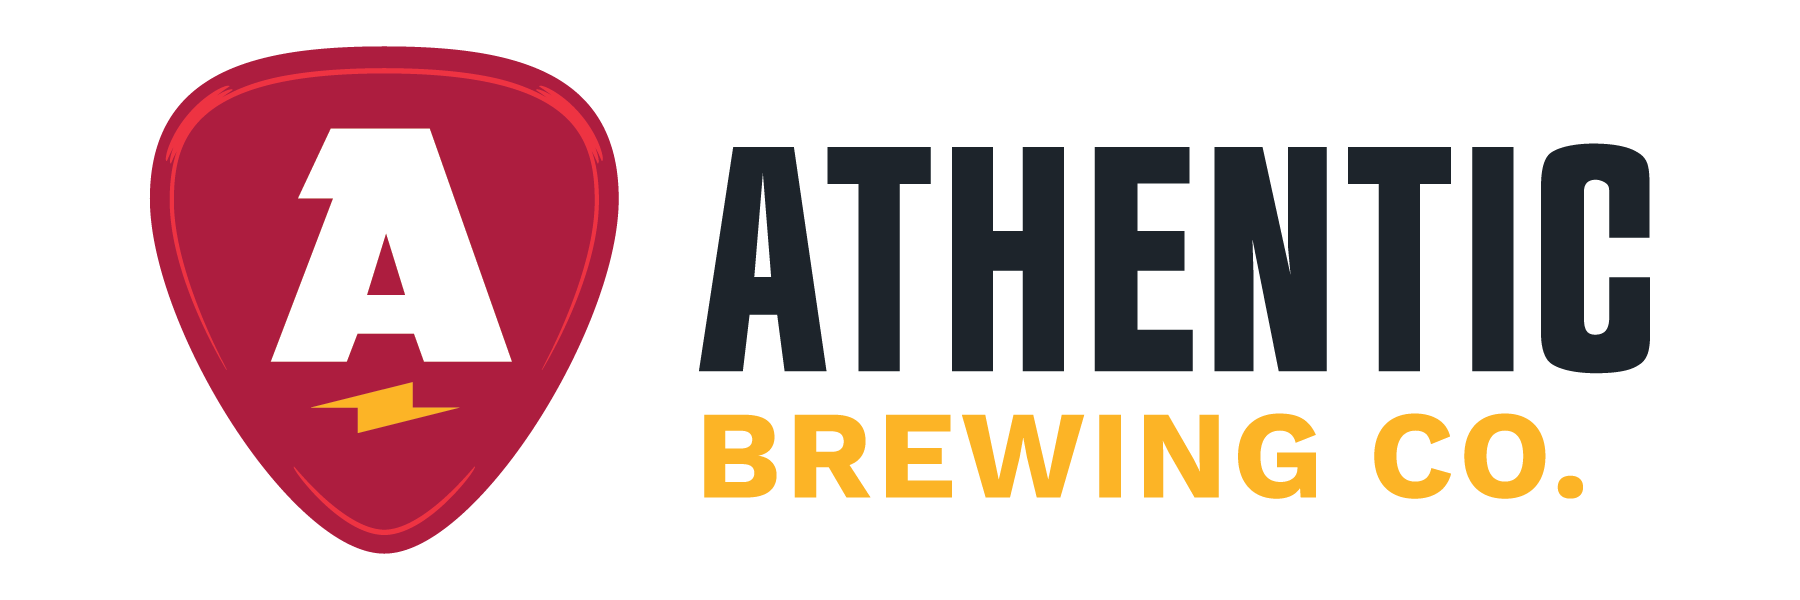 Athentic Brewing Company